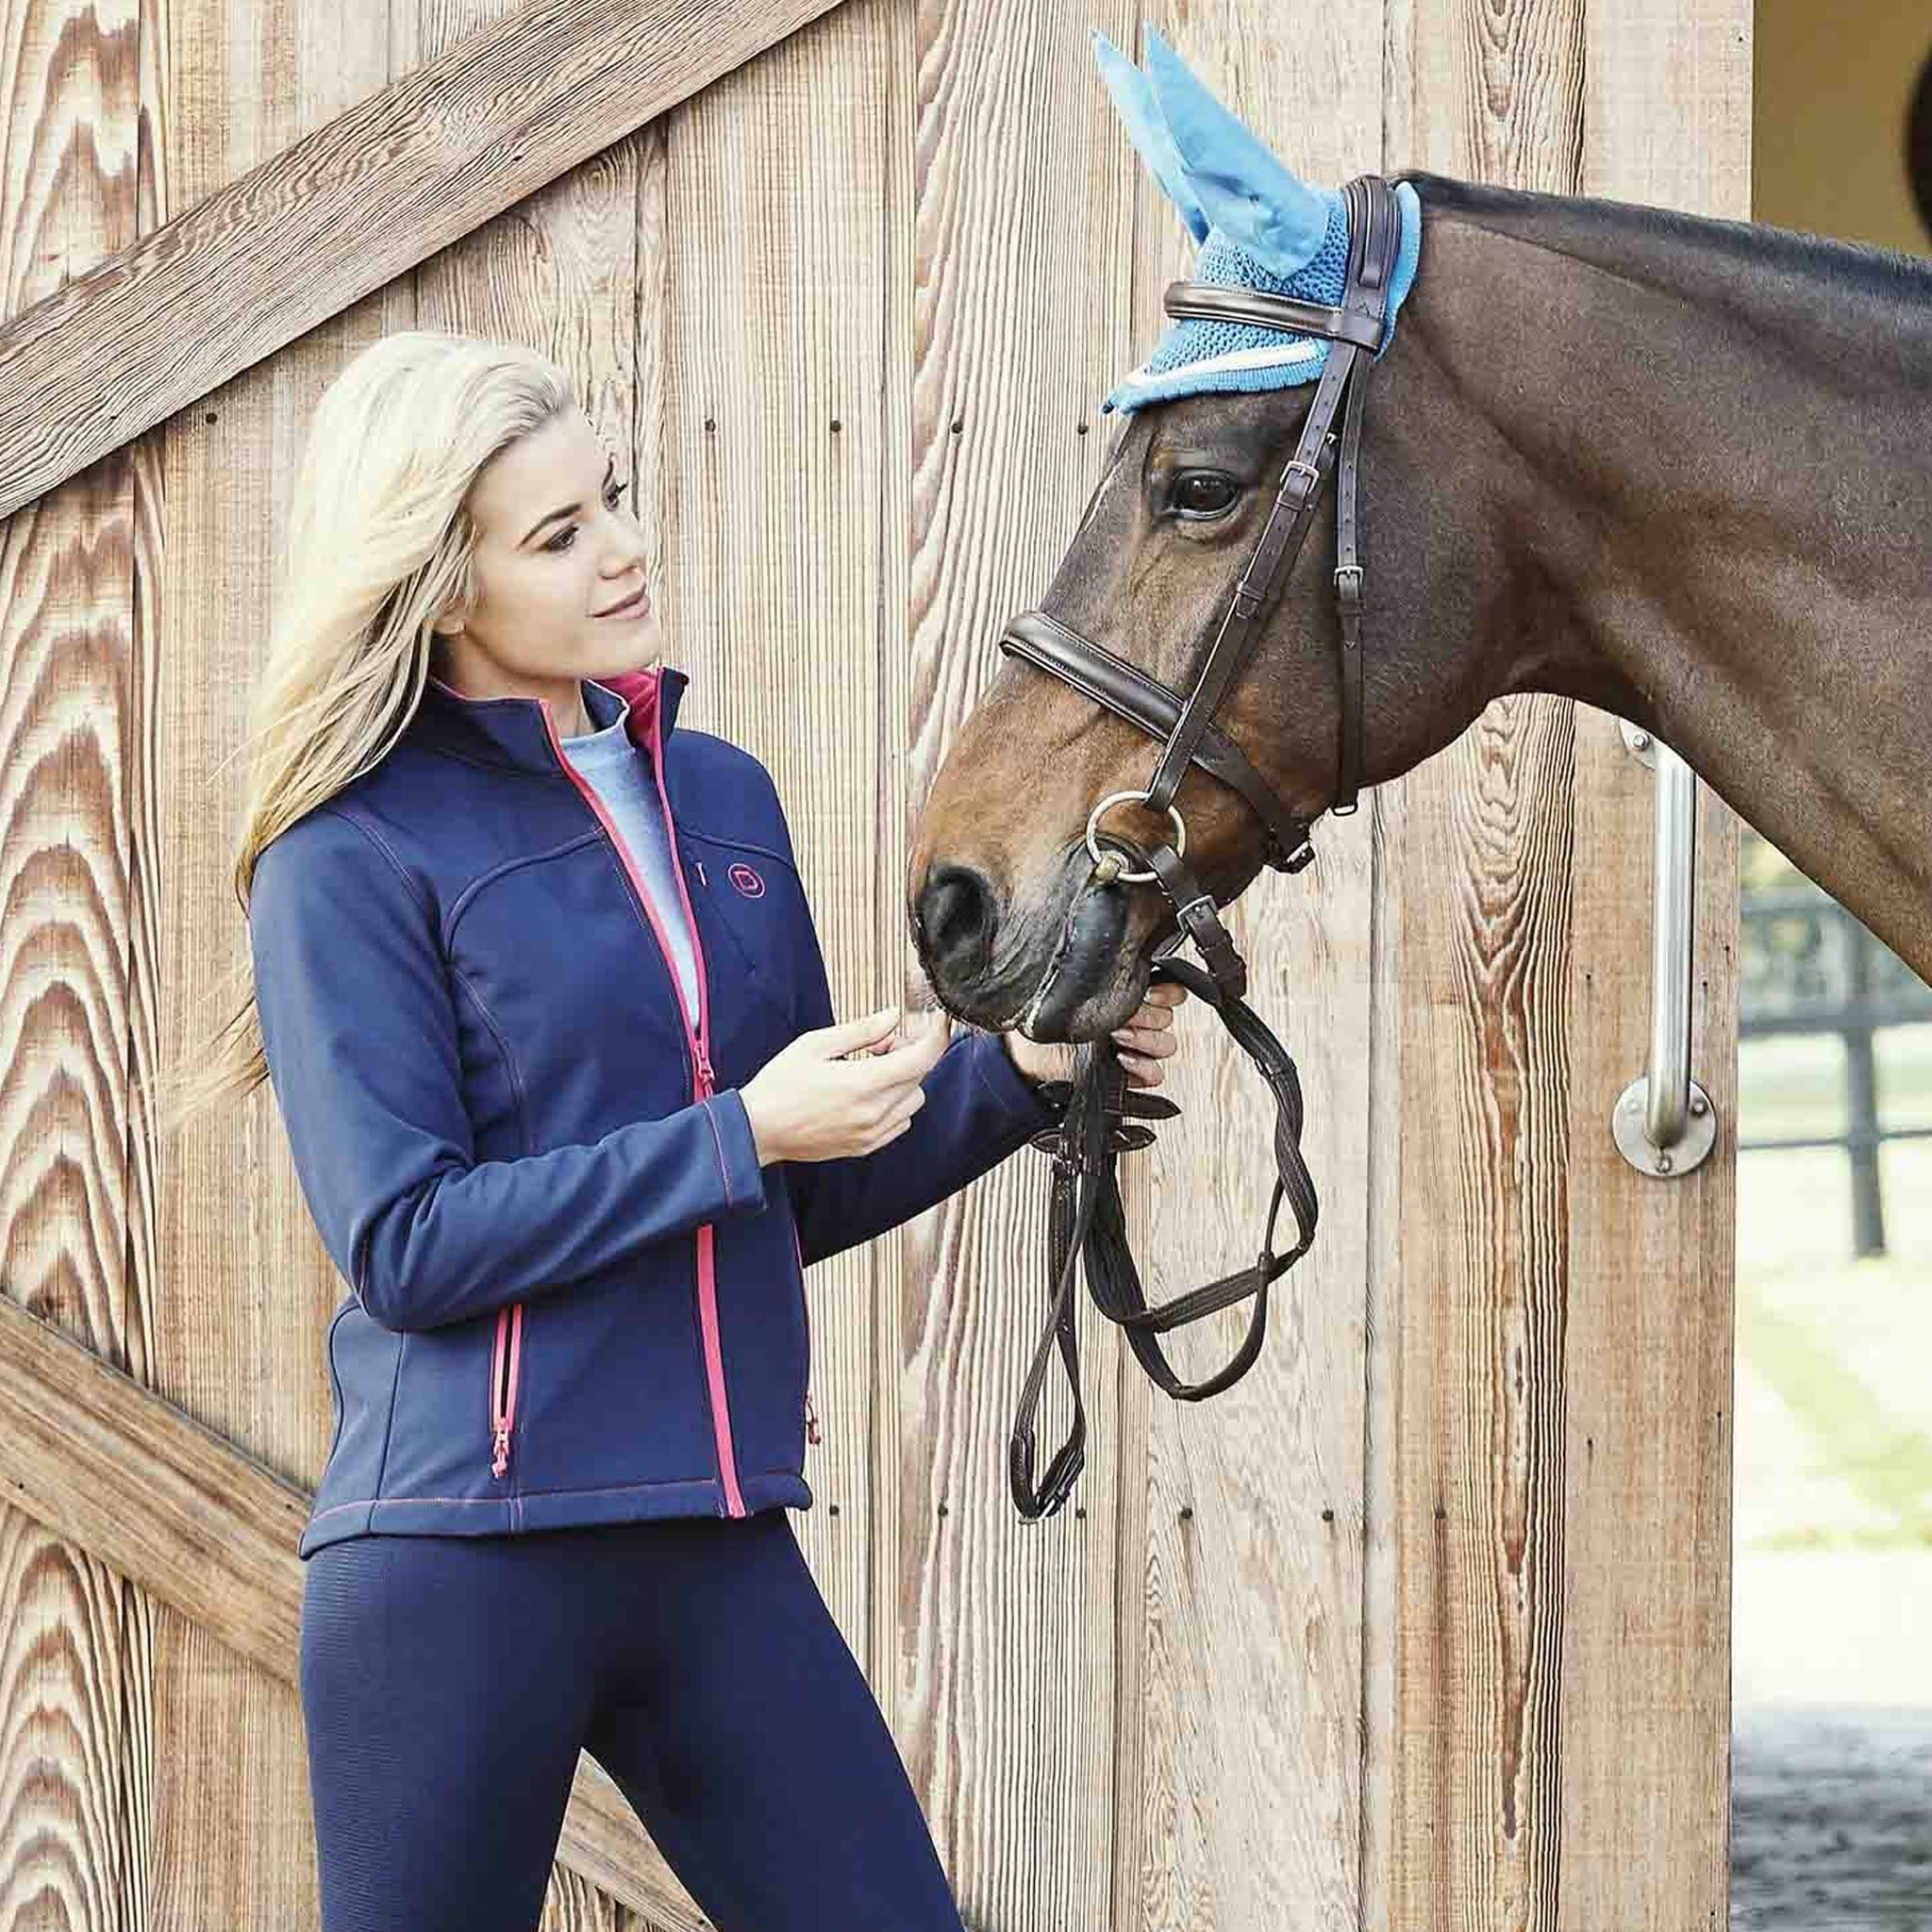 Dublin Sachi Jacket 819626 Navy and Poppy On Model With Horse